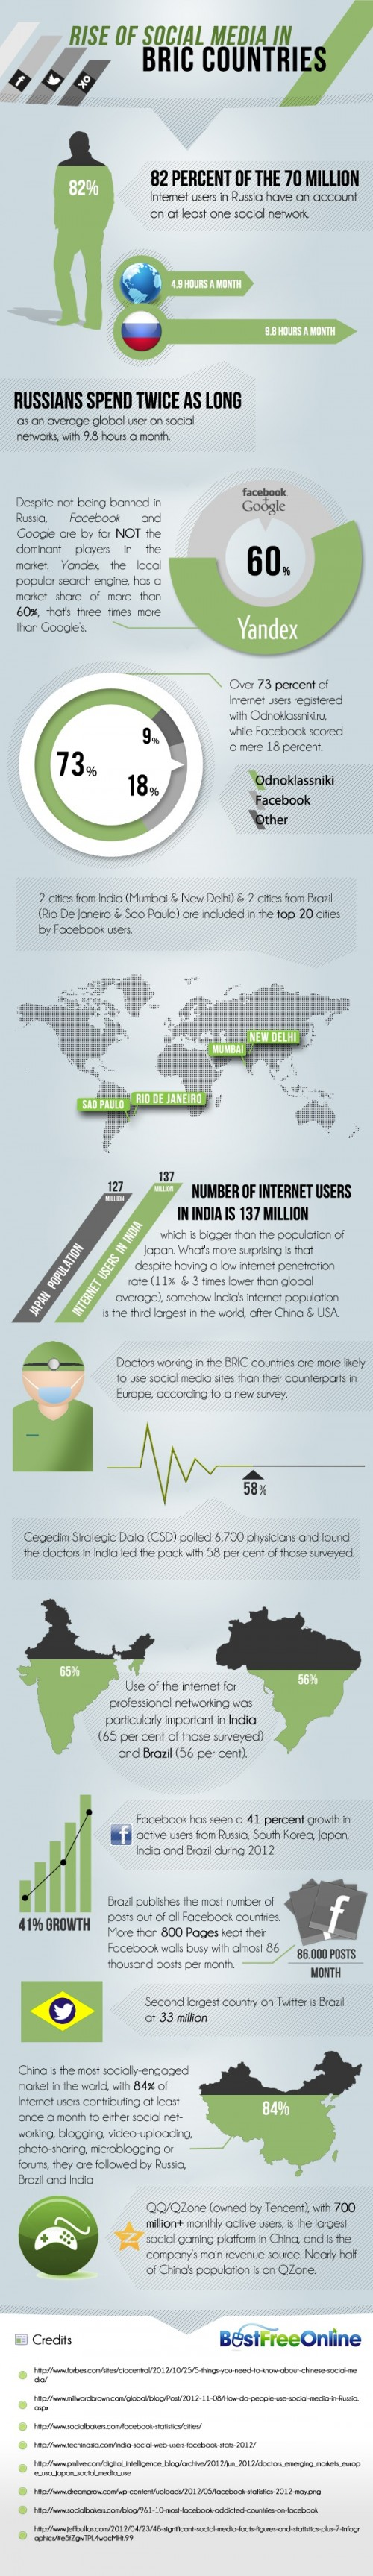 Infographic: Rise Of Social Media In The BRIC Markets